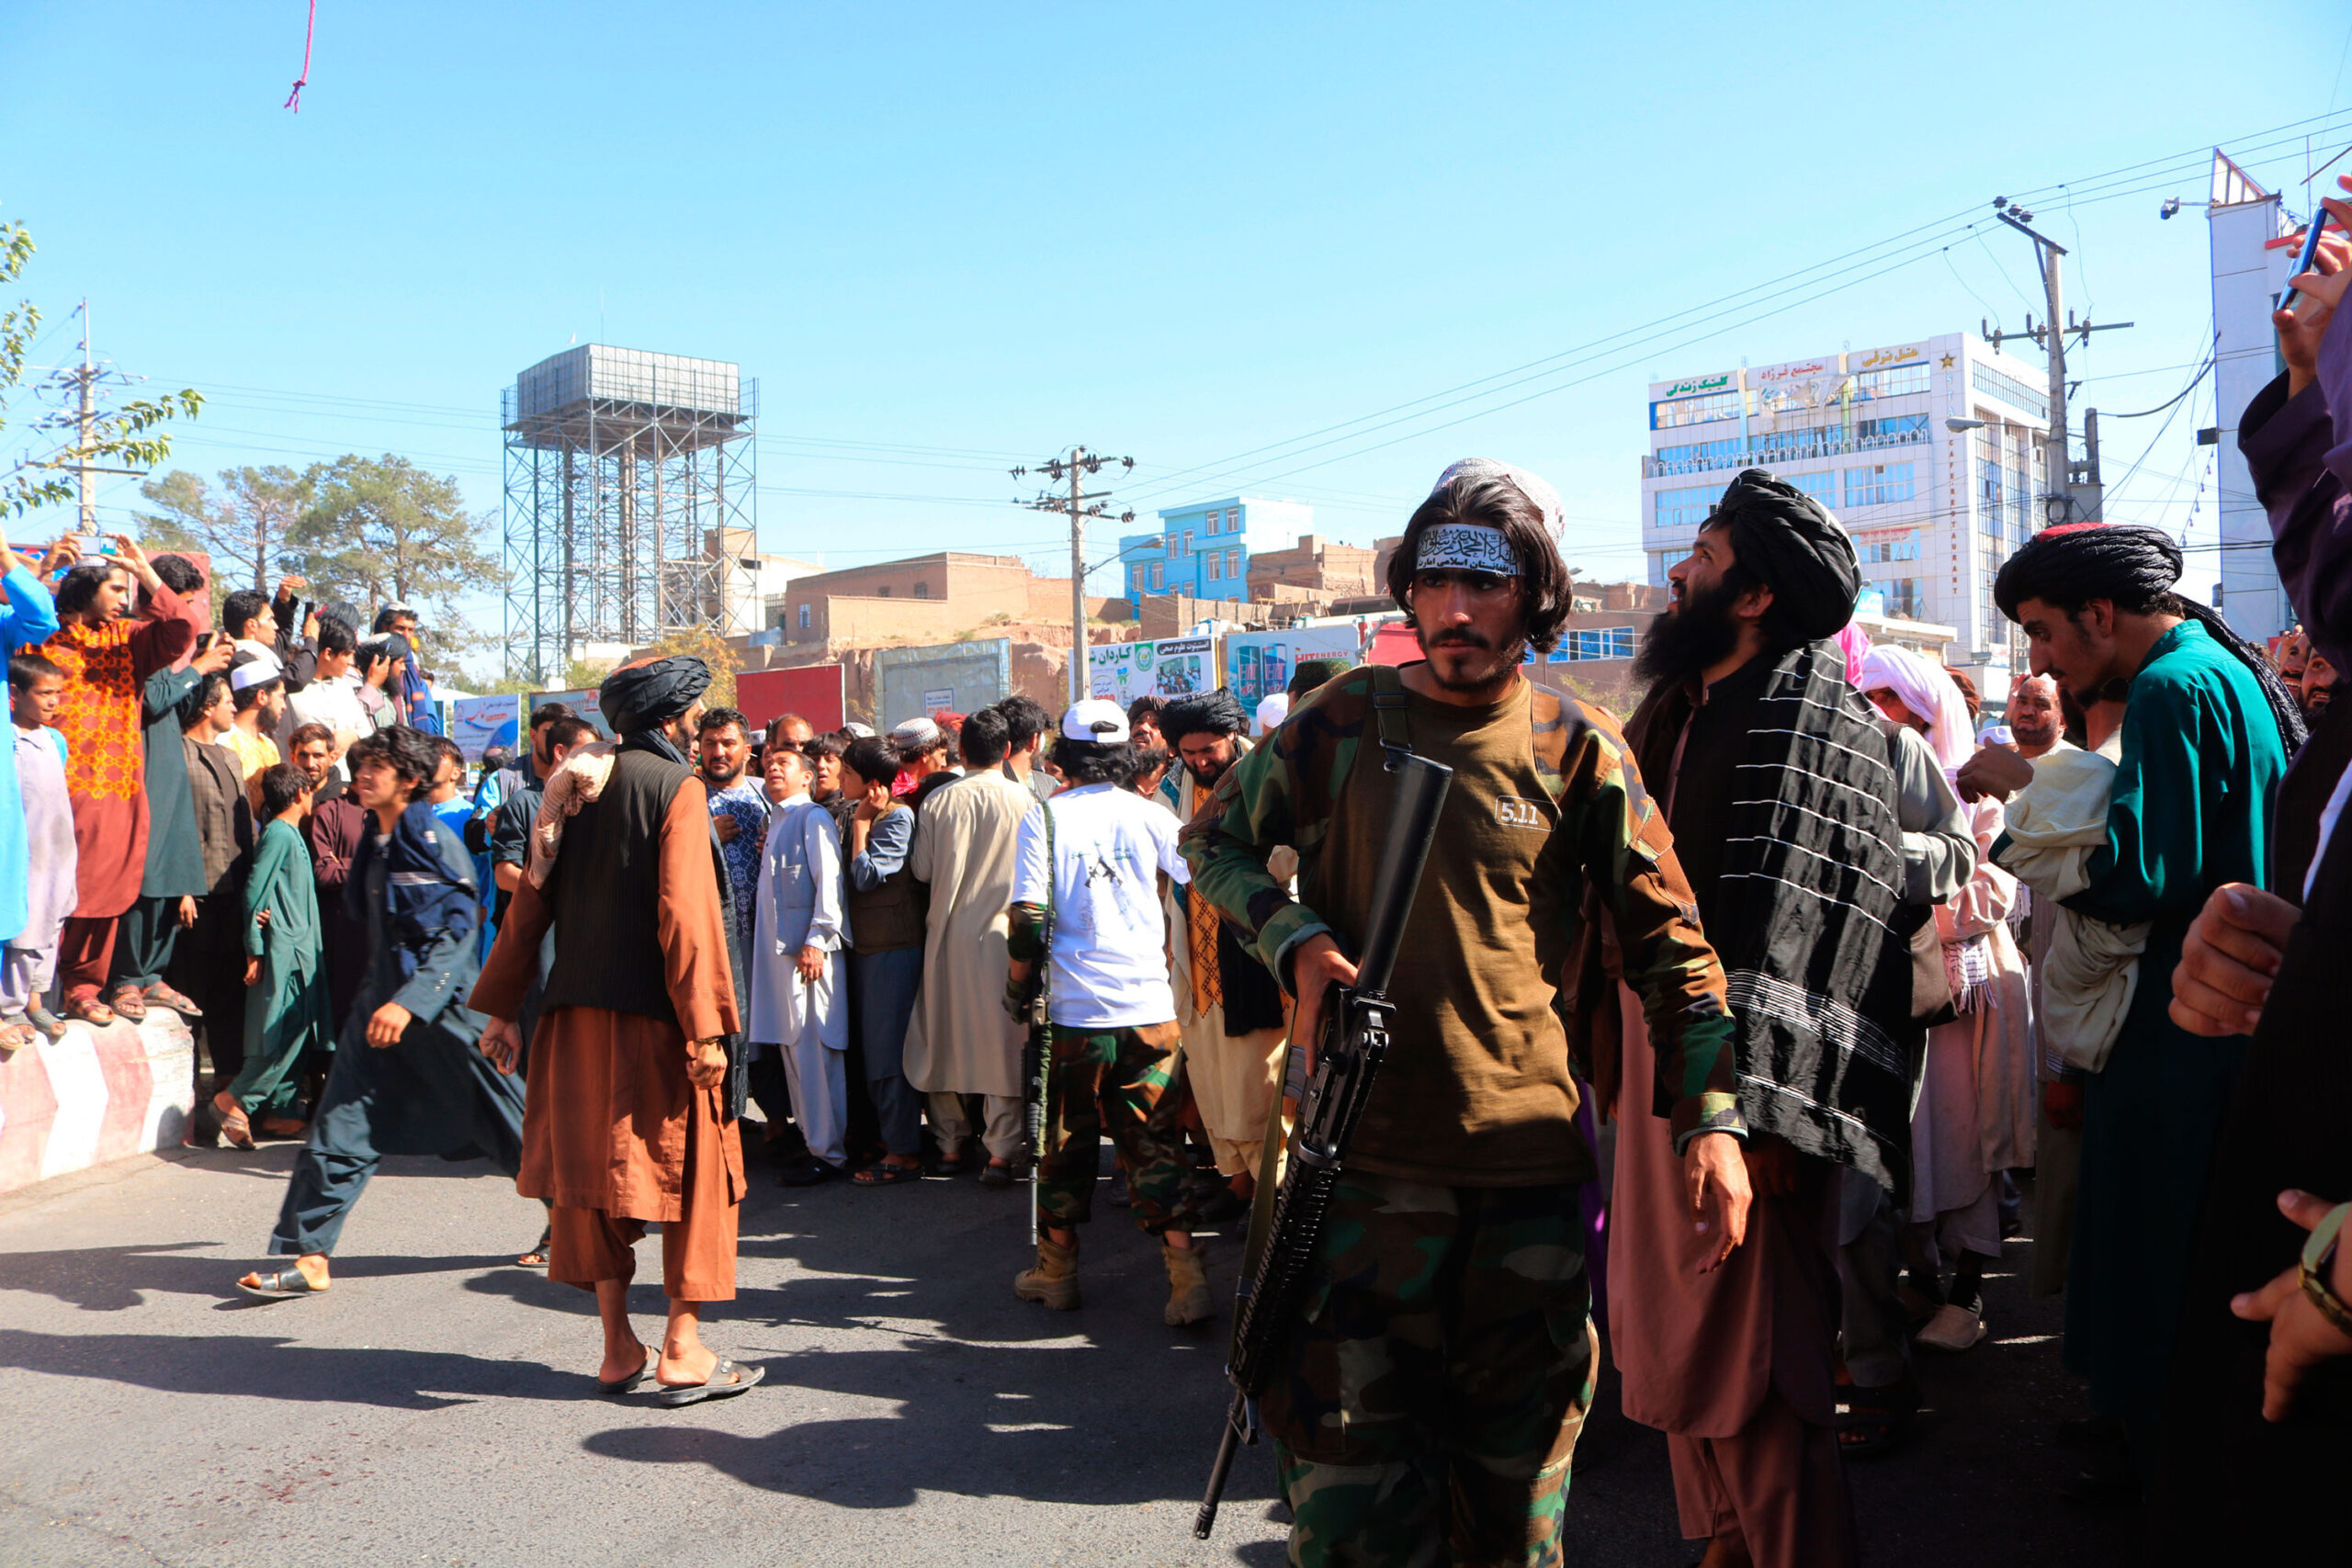 <i>AP</i><br/>The Taliban in Afghanistan have put on public display the bodies of four men who were killed after they allegedly carried out a kidnapping in the western city of Herat.